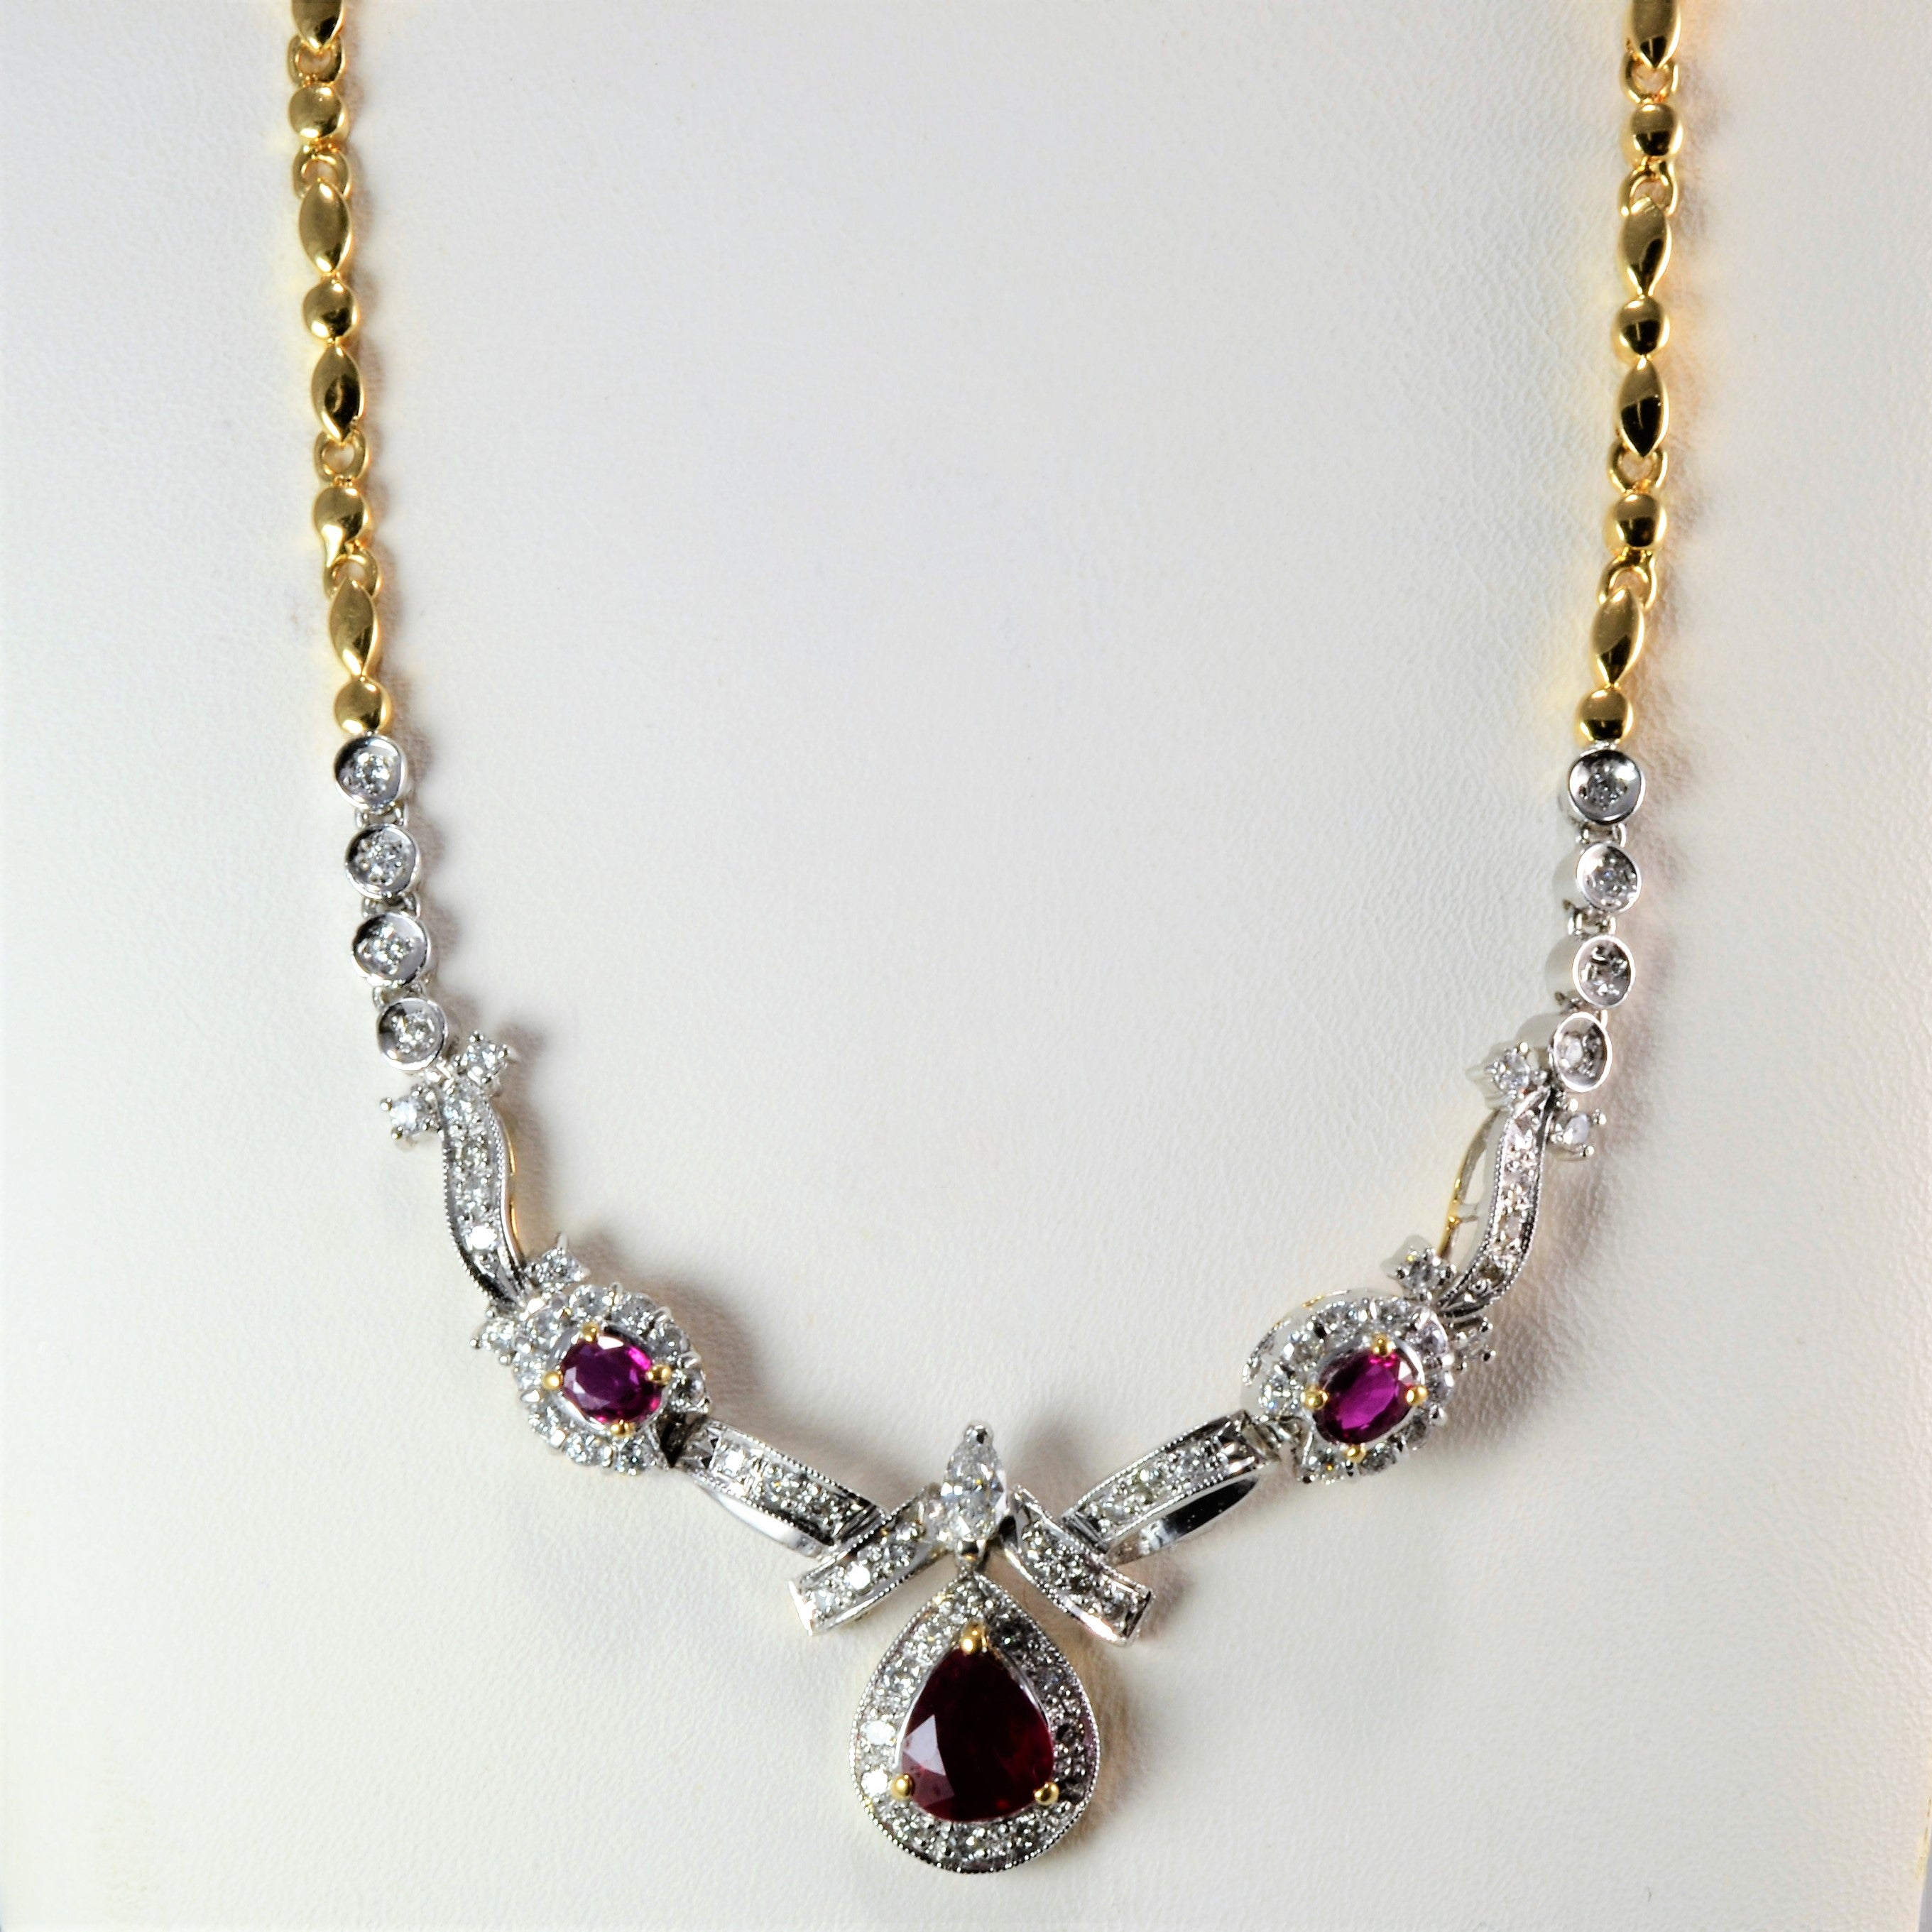 d3ffc168f Two Tone Gold Ruby & Diamond Ladies Necklace | 0.86 ctw, 18''| – 100 ...